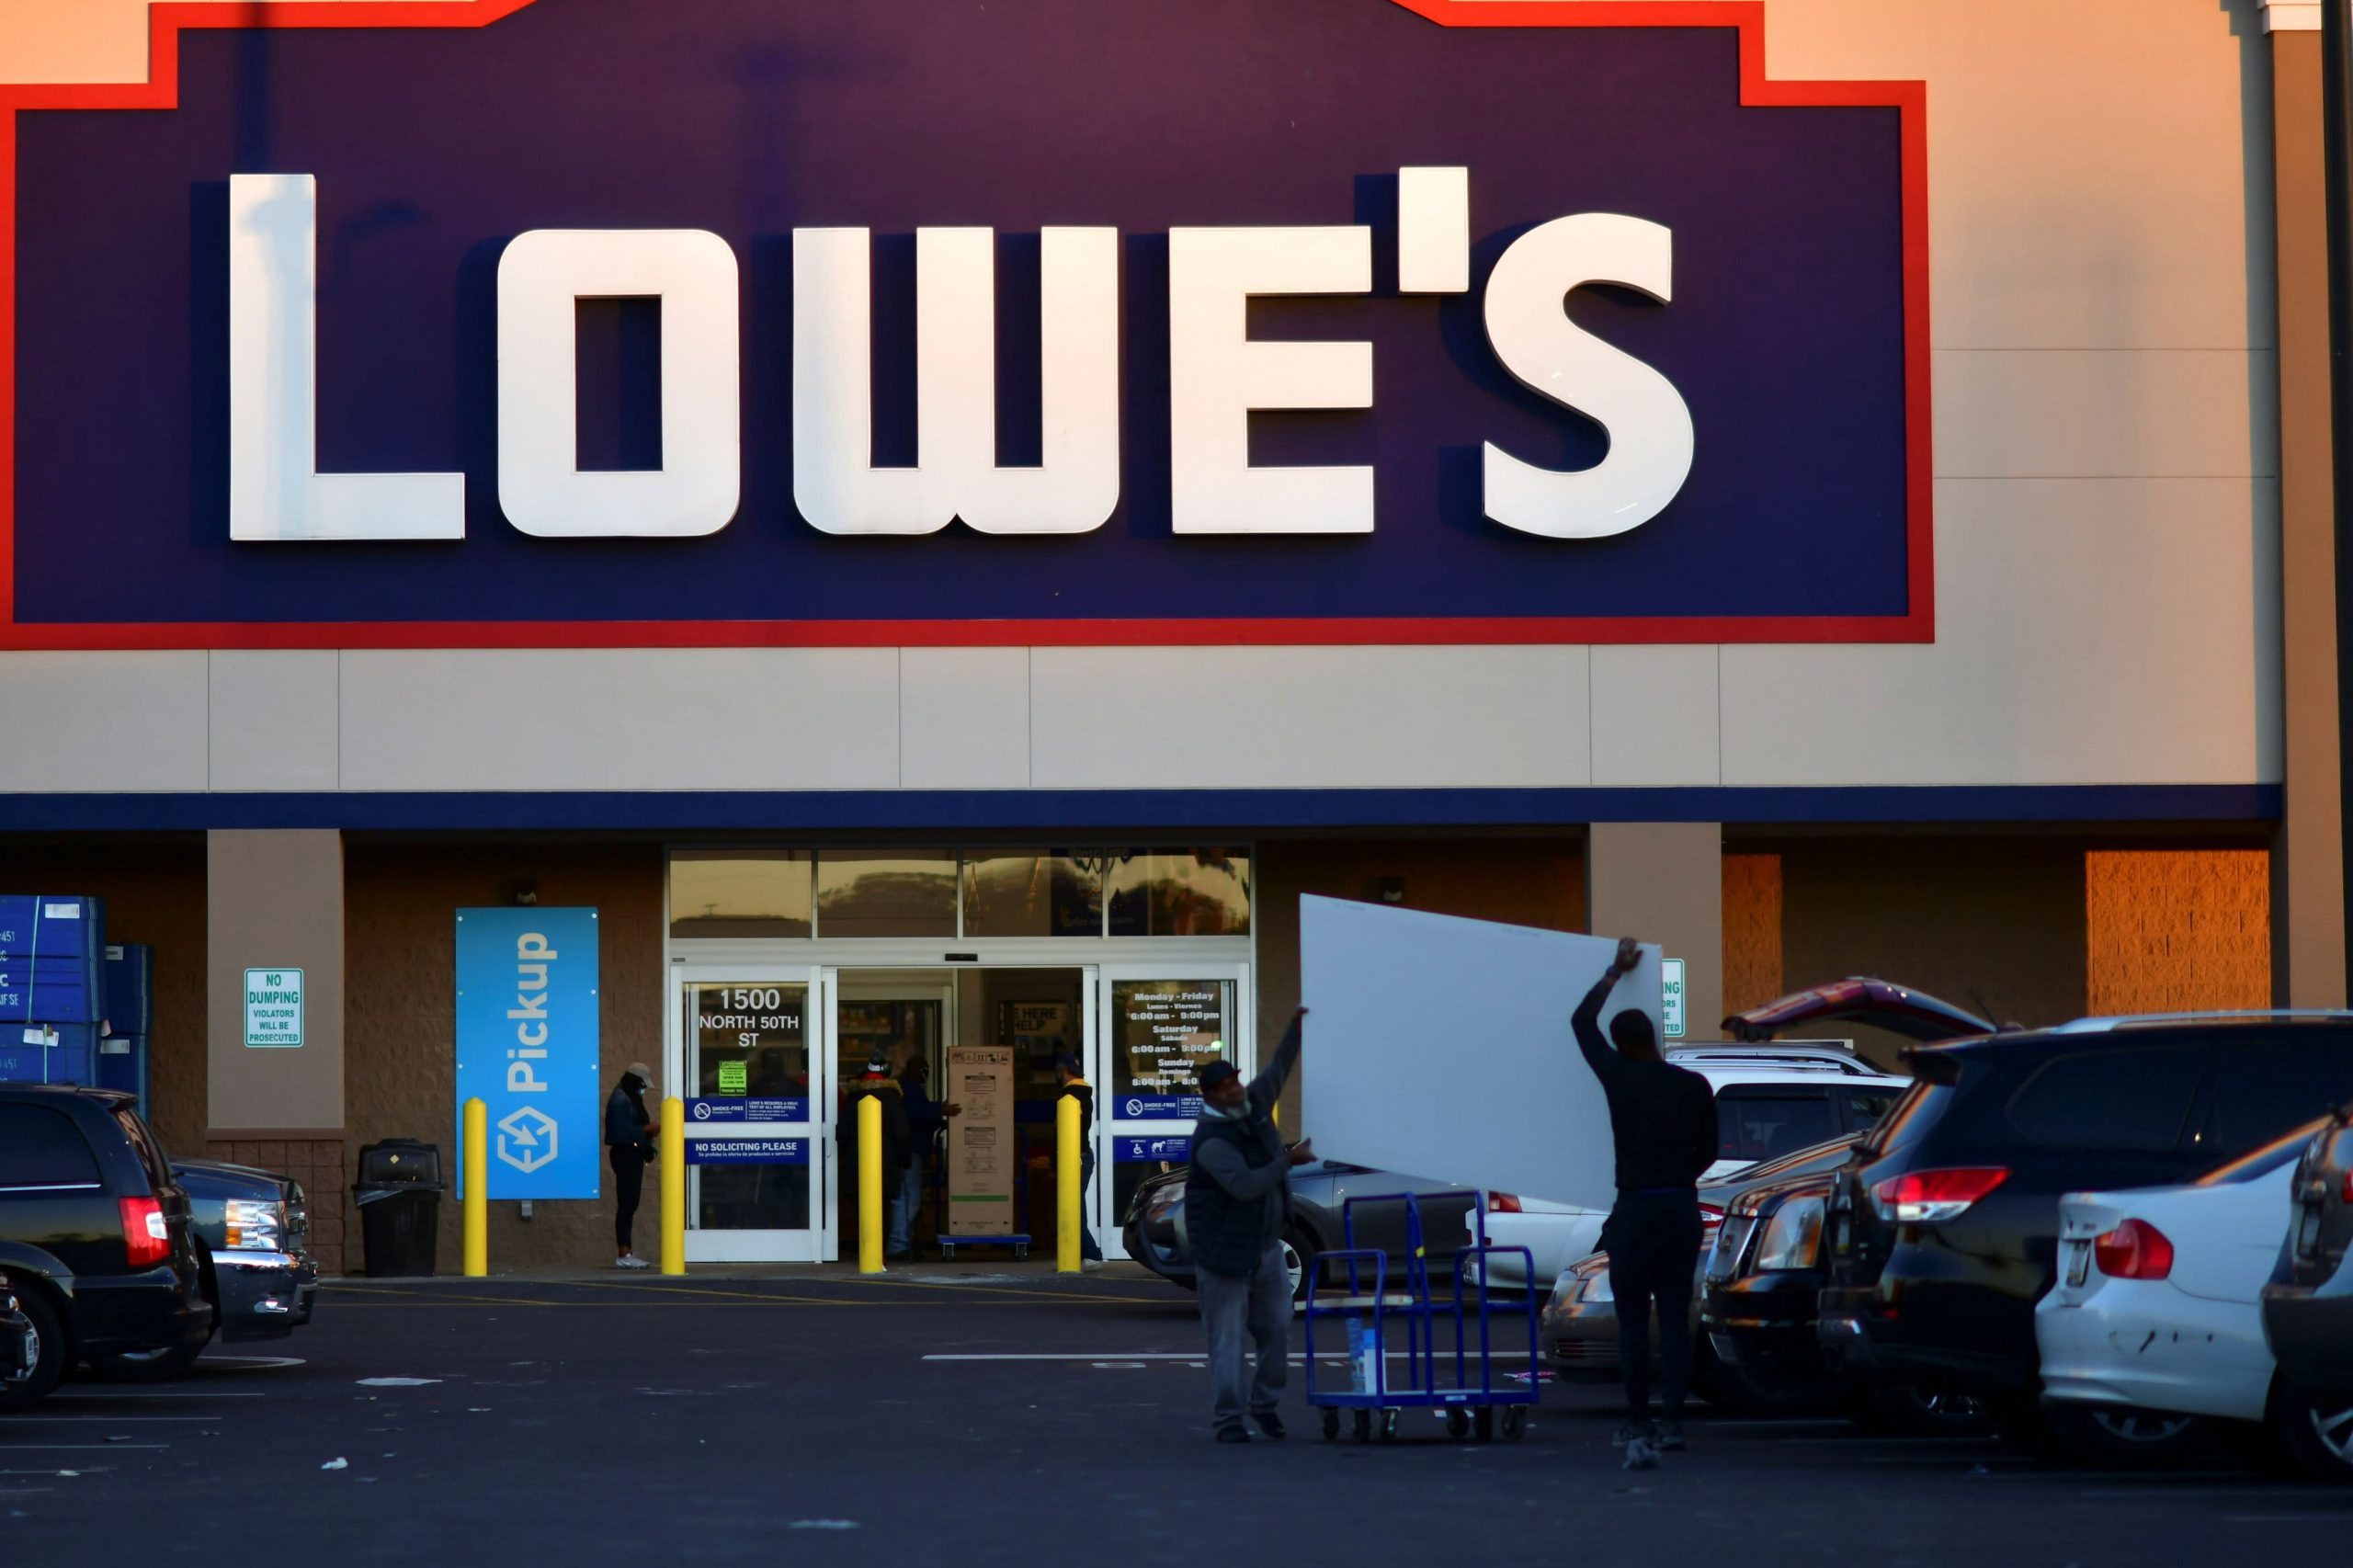 Stocks making the biggest moves midday: Lowe's, ViacomCBS, Target, BlackBerry and more